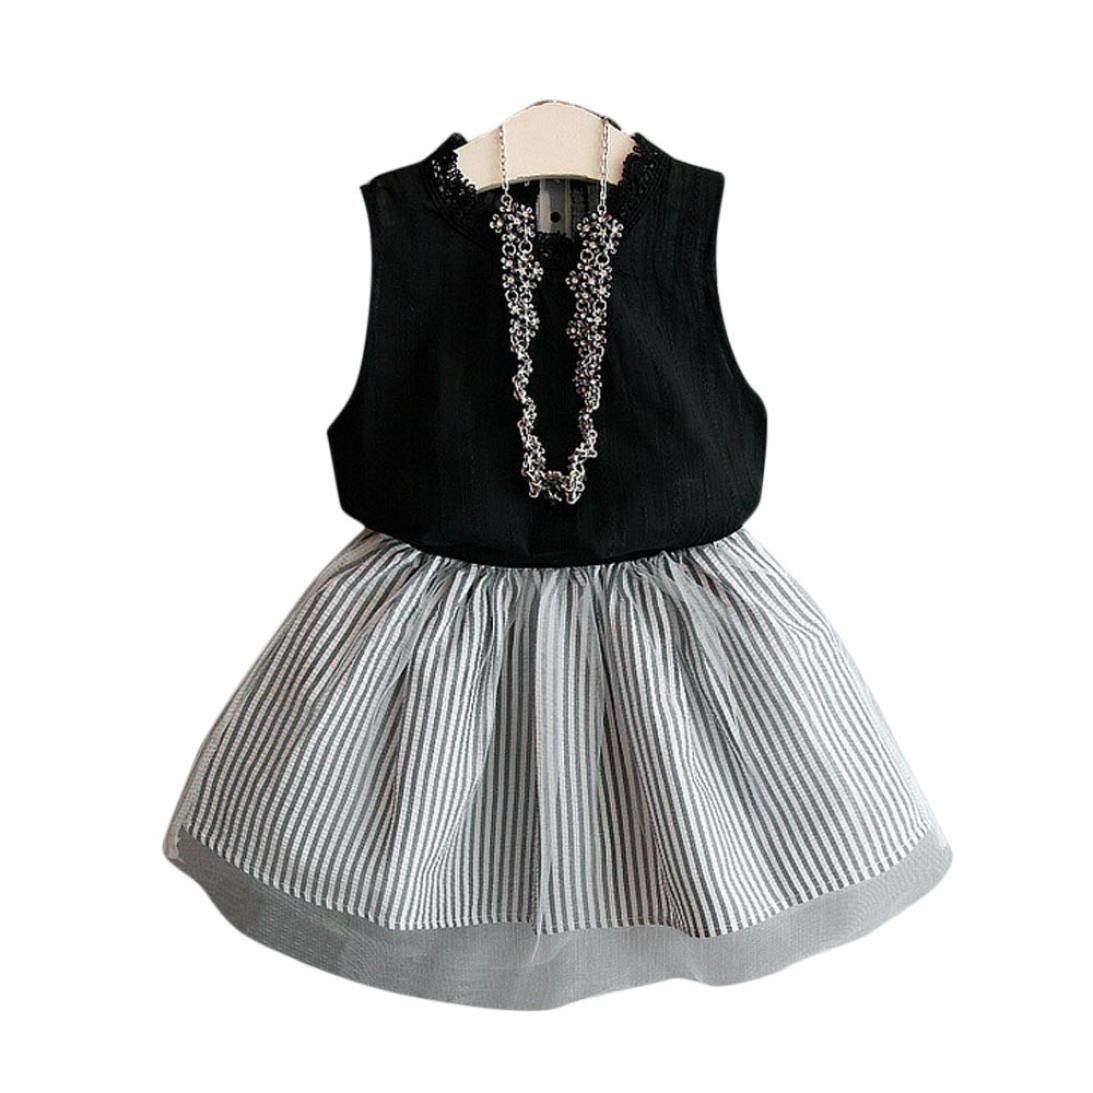 a42e8eb4d7d8 Amazon.com  Vicbovo Little Girl Summer Clothes